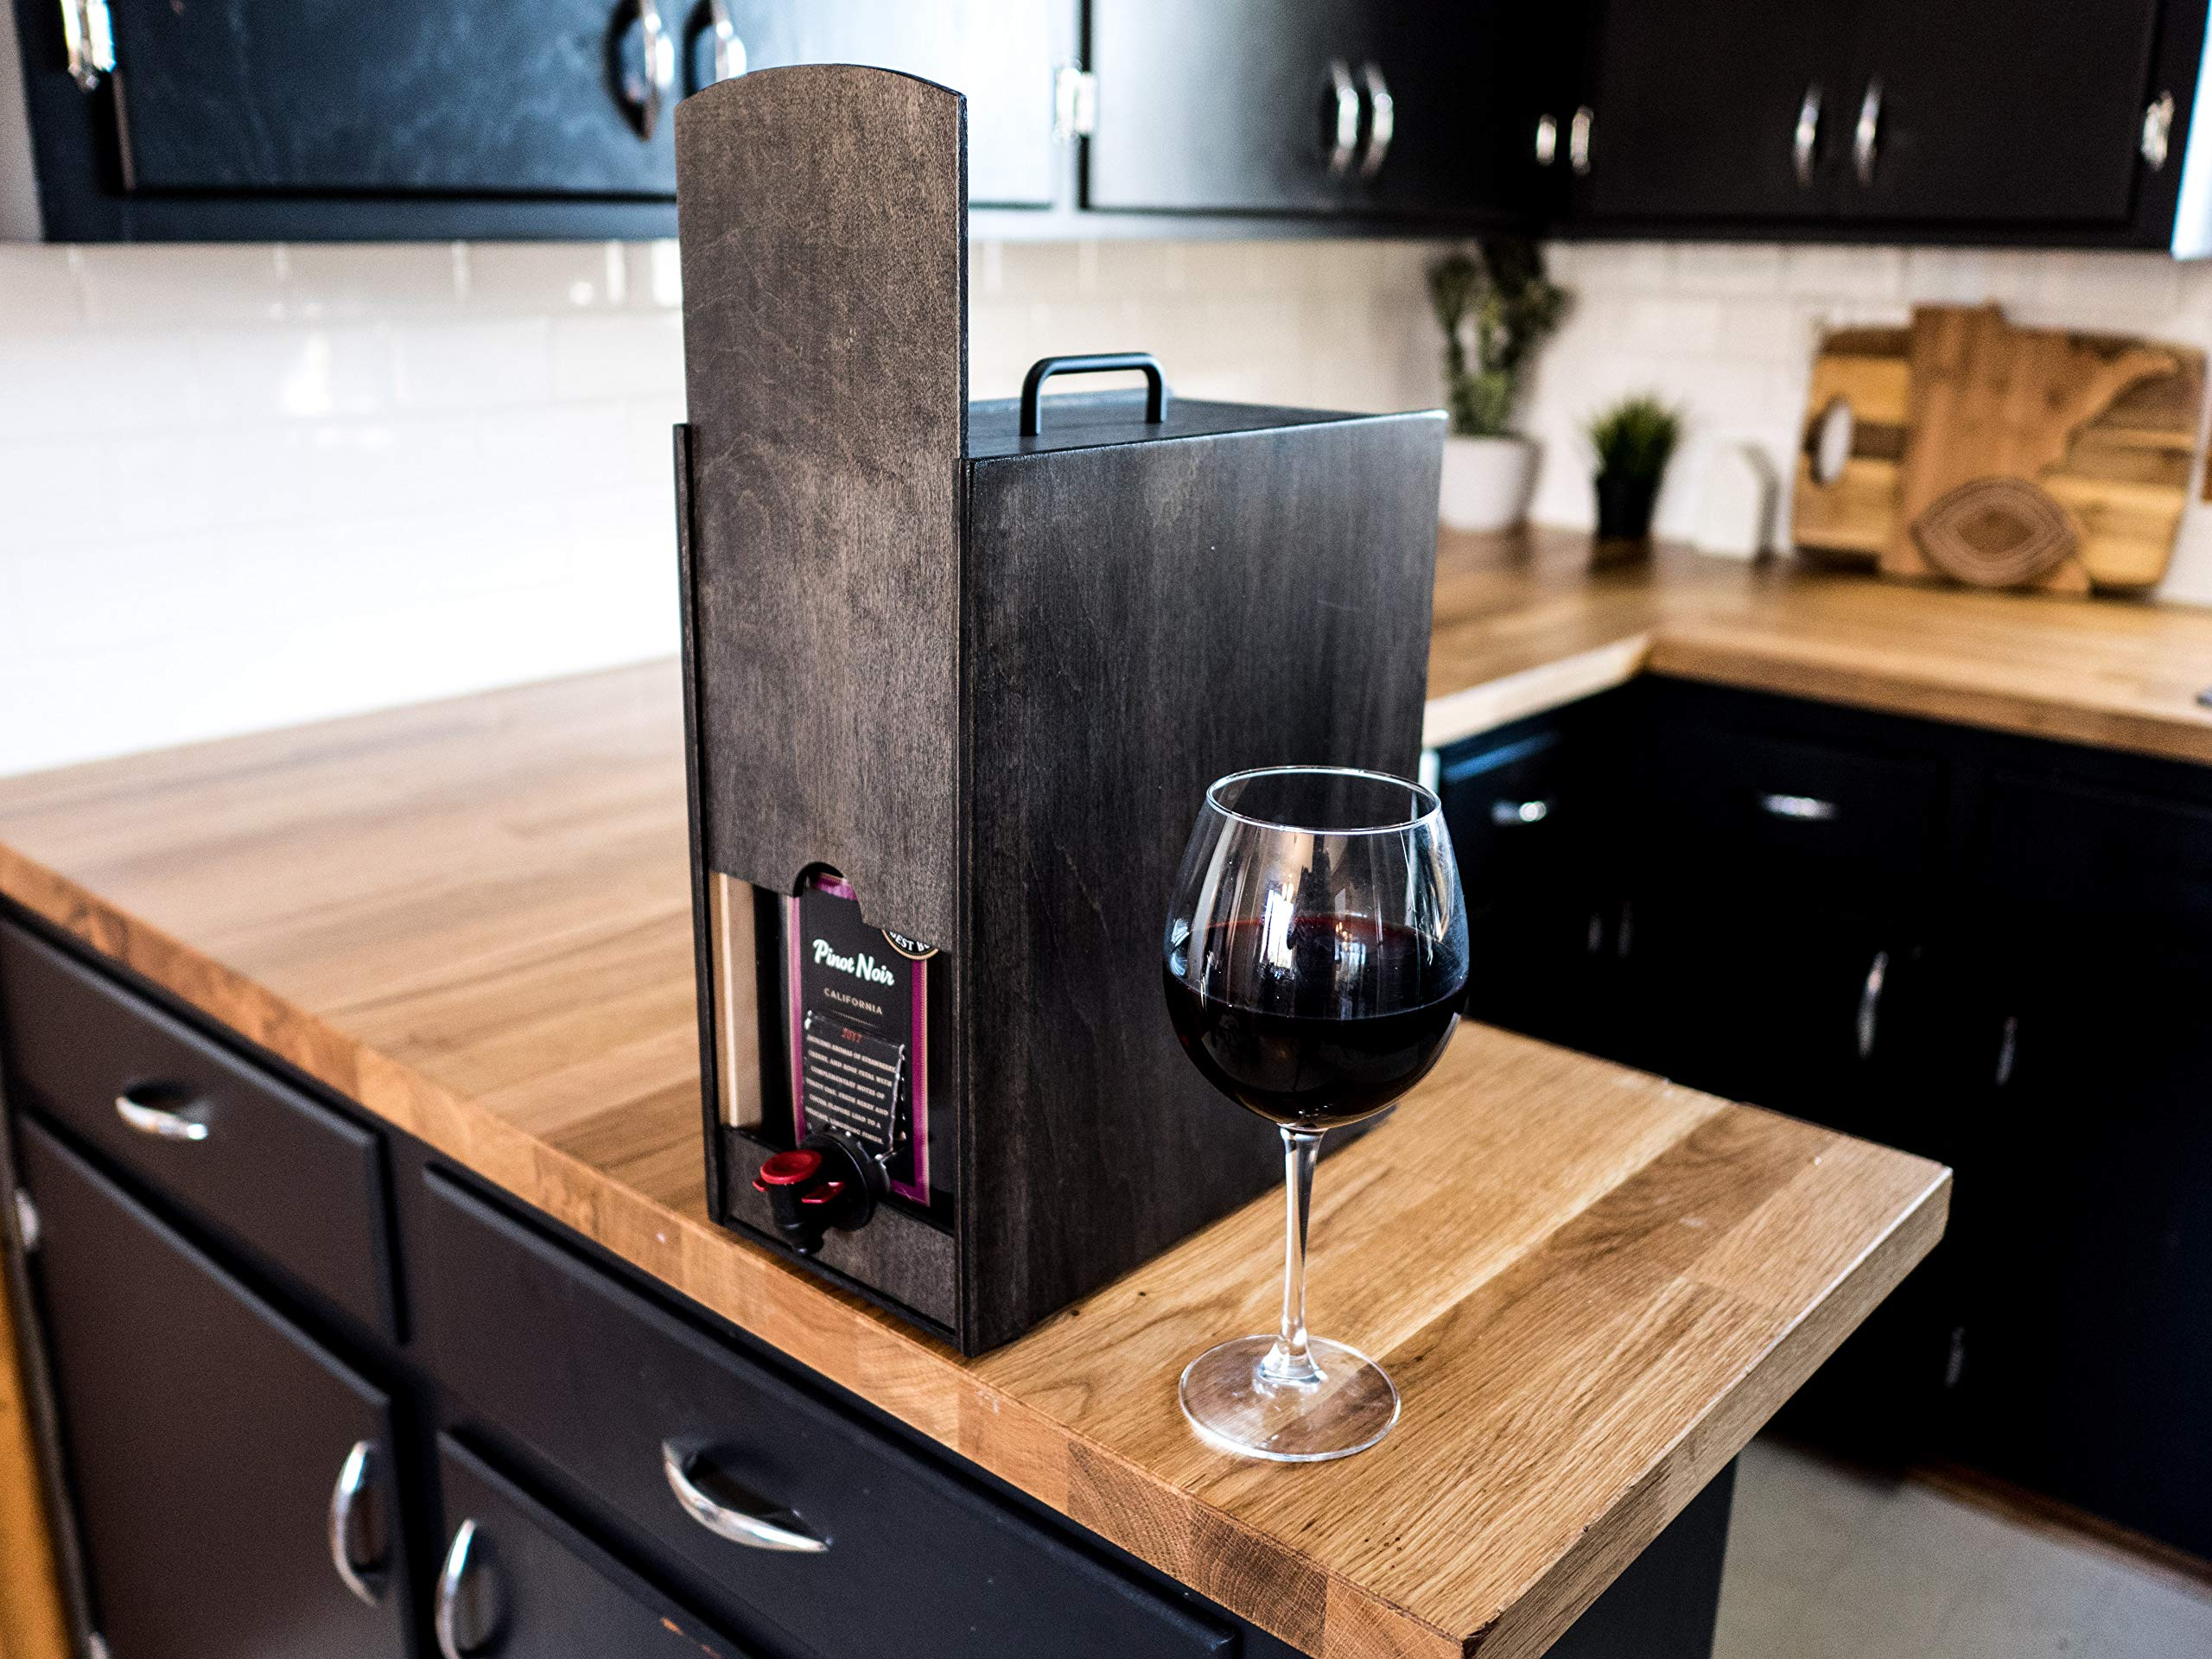 Boxed Wine Wood Case by Winewood | Black Color | Fits 3 Liter and 5 Liter Boxes of Wine | Holder, Dispenser, Cover for Boxed Wine by Winewood Cases (Image #3)